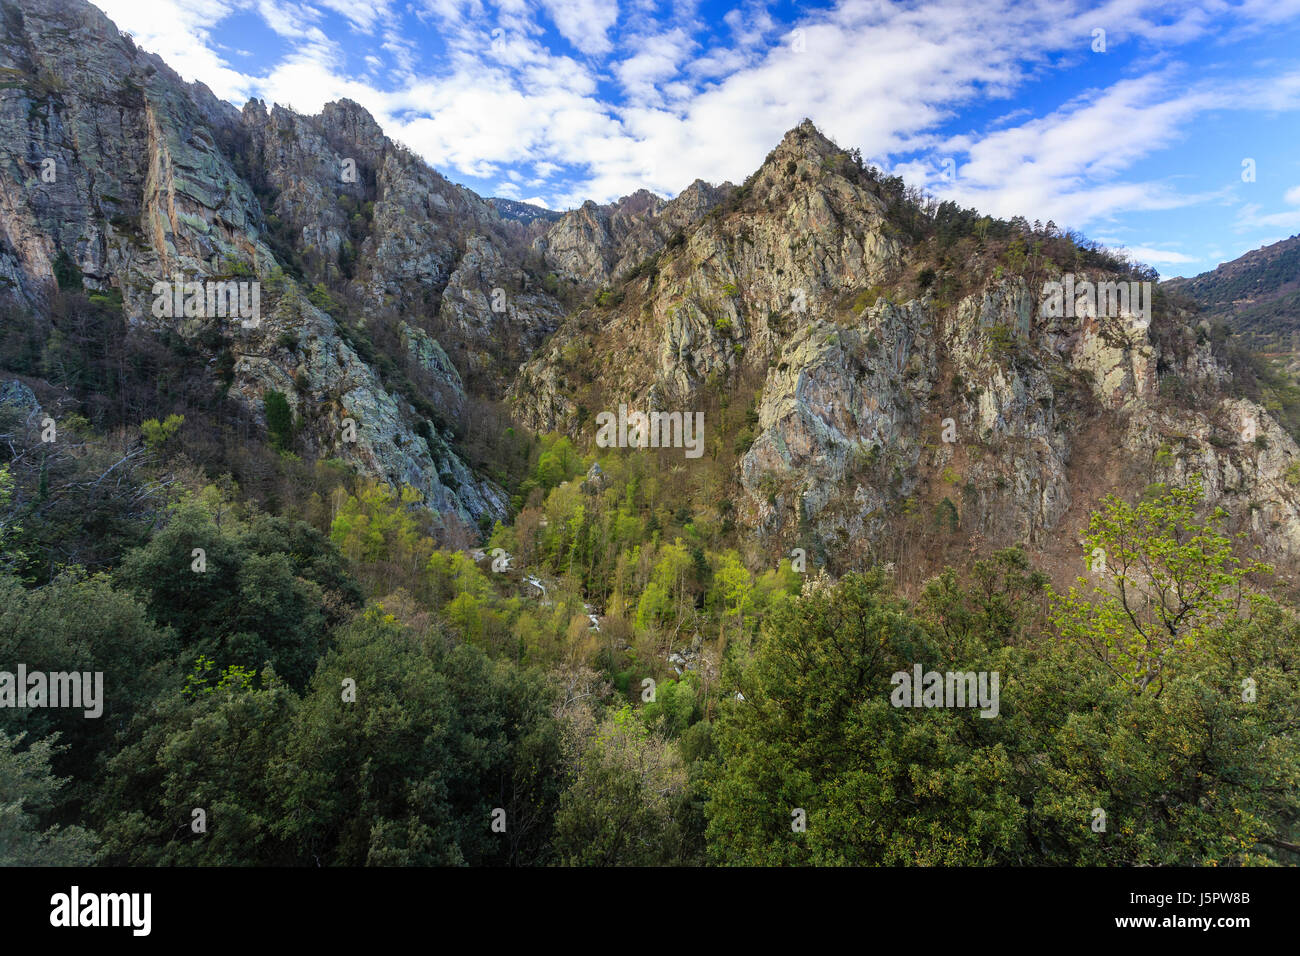 France, Pyrenees Orientales, Casteil, mountain - Stock Image